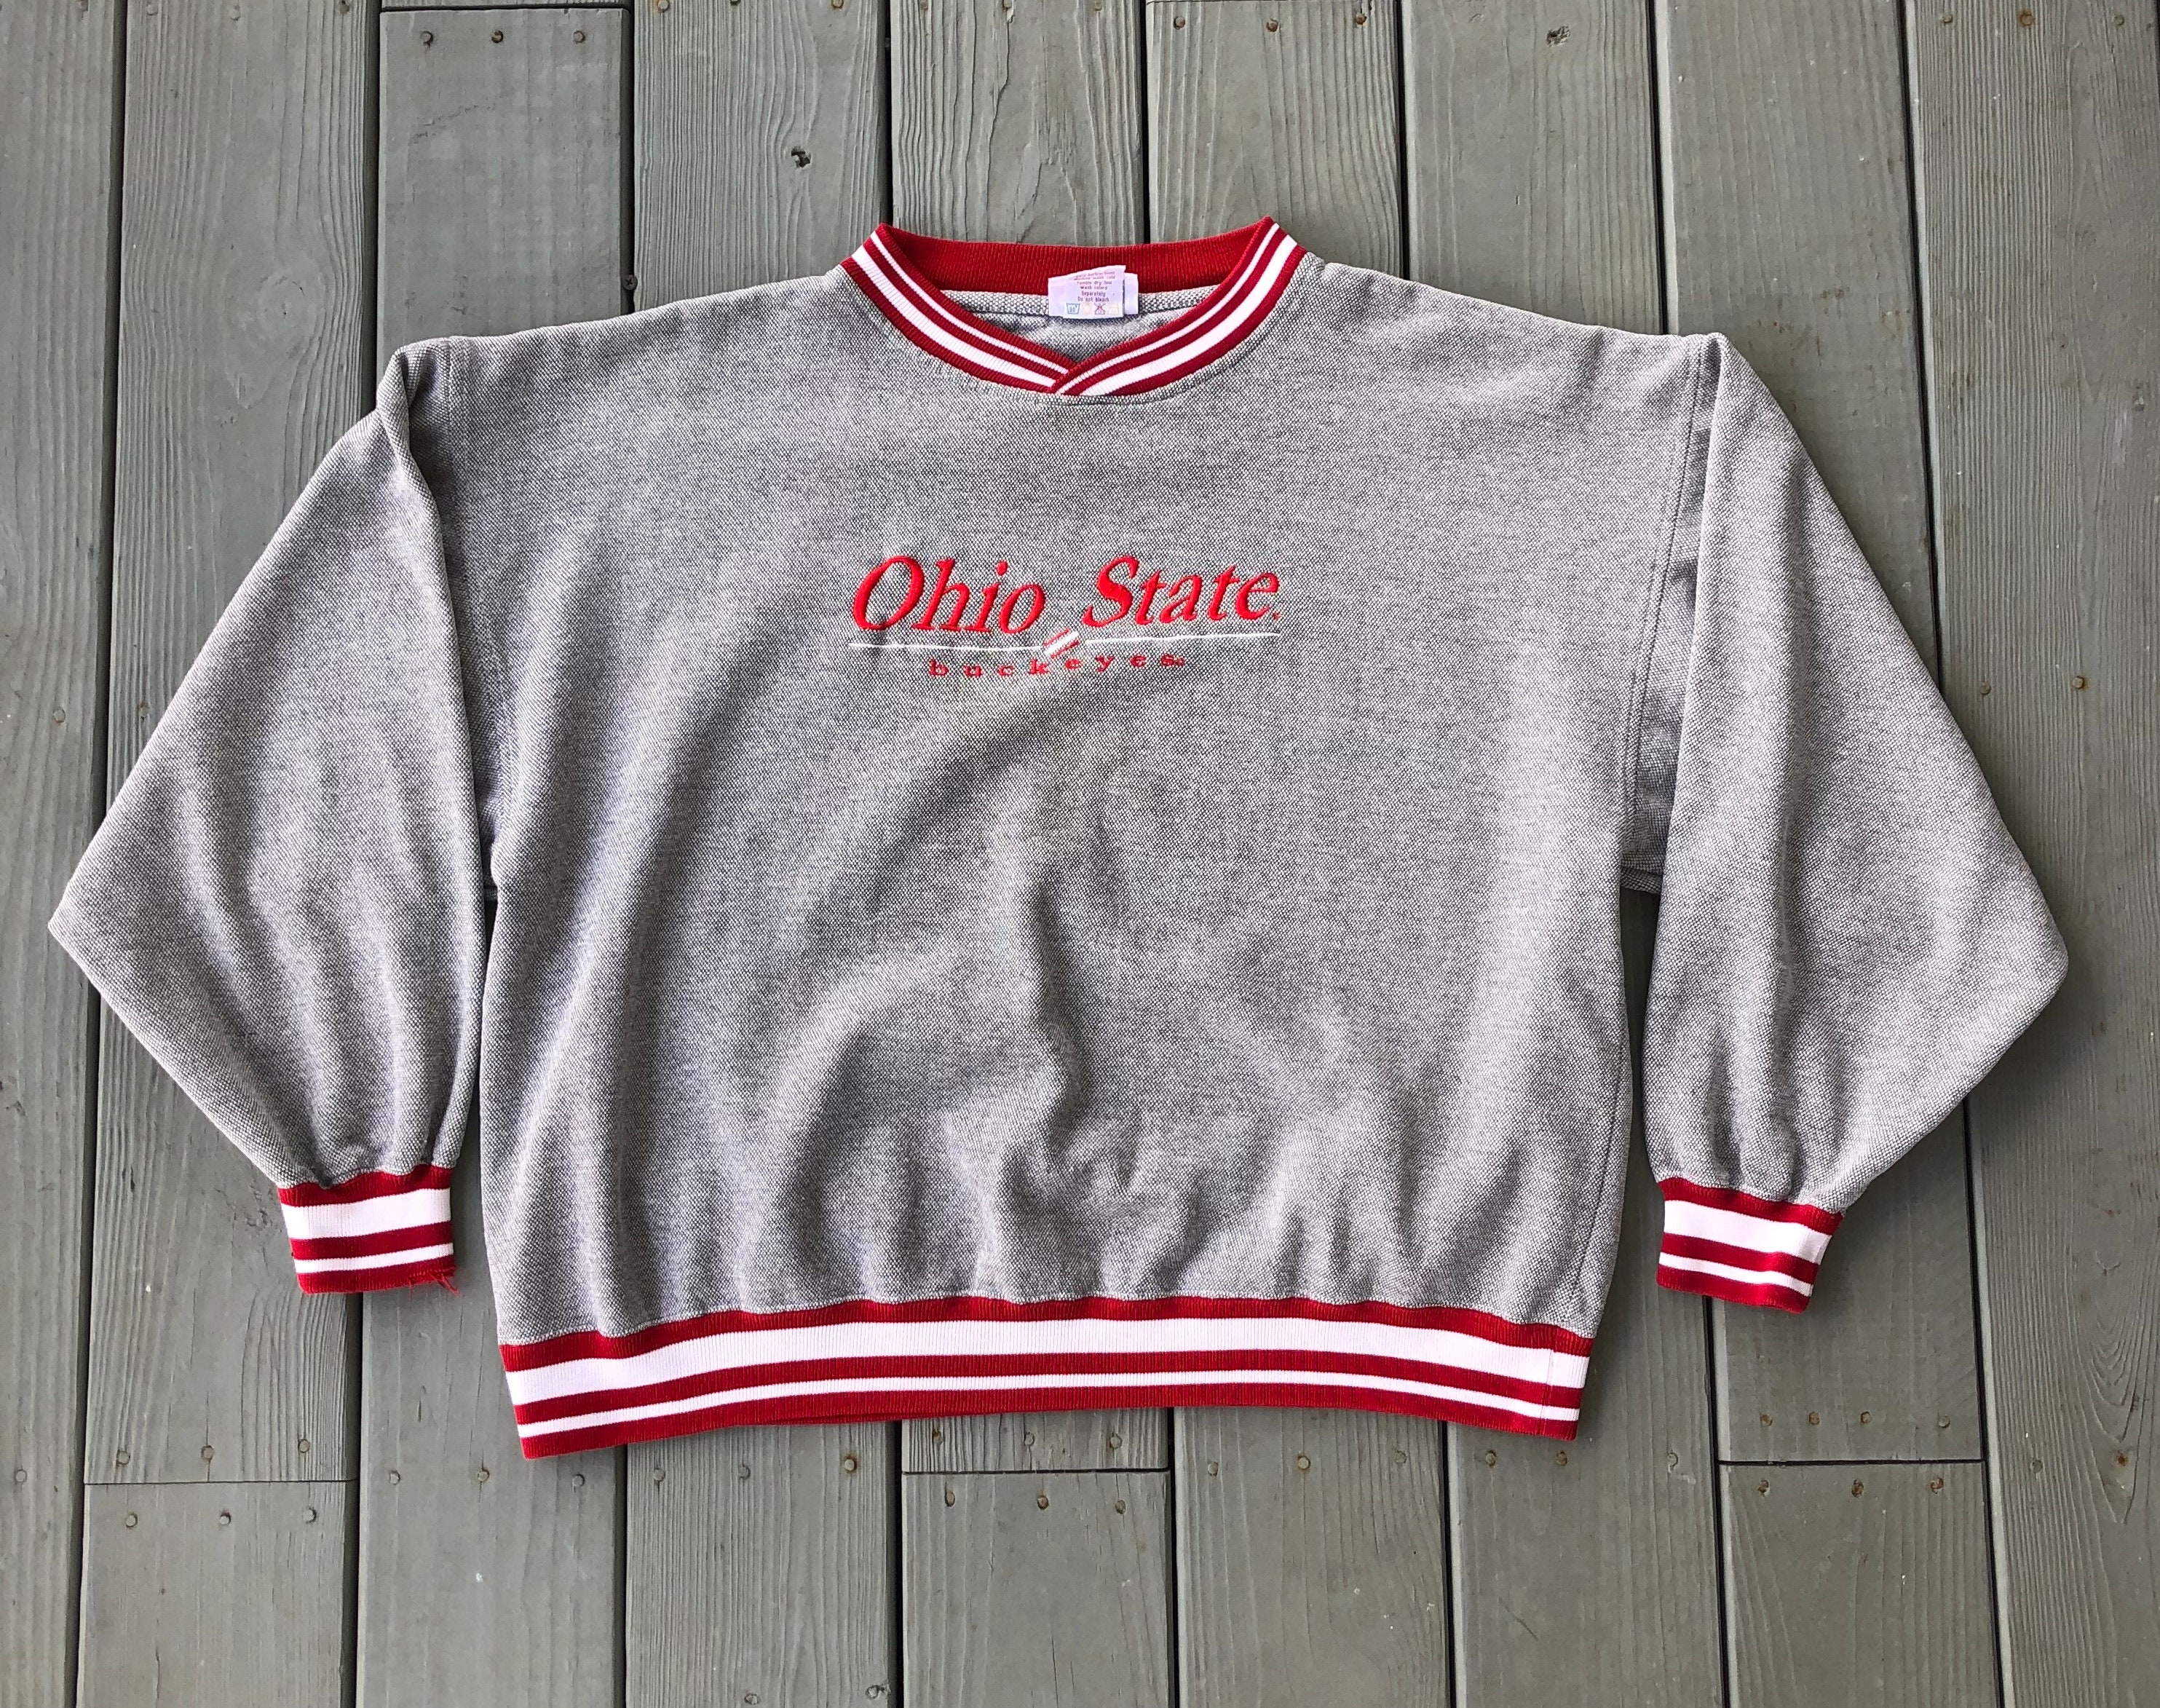 9e74149495f0e Vintage 90s Ohio State University Buckeyes embroidered crewneck  sweatshirt-gray and red-size 2XL